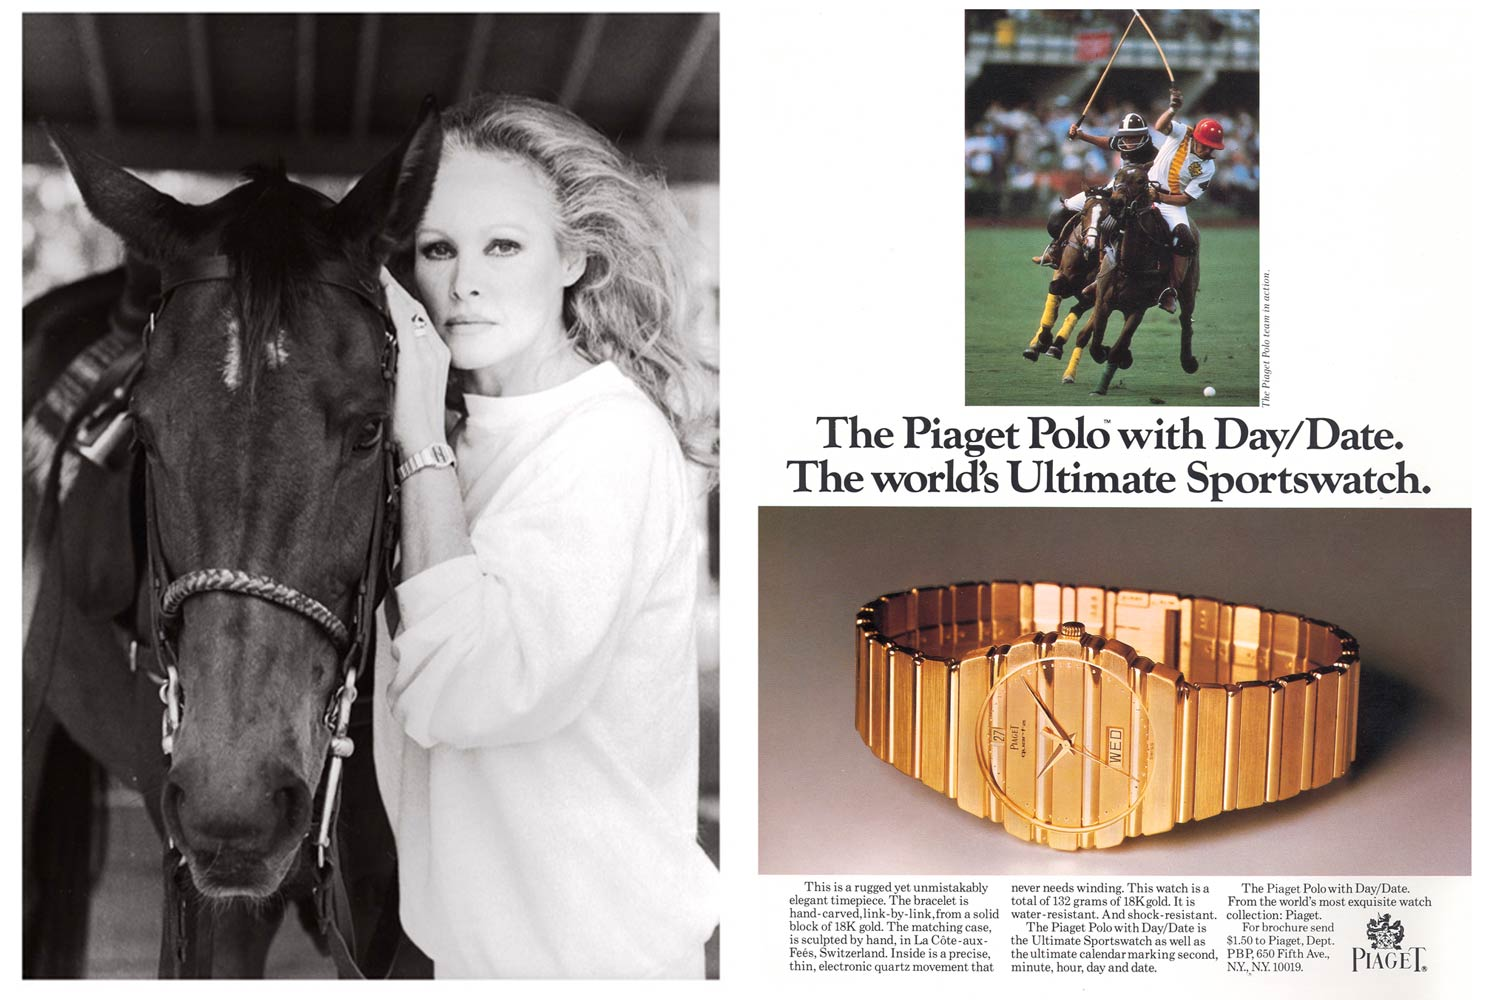 The watch got its first serious outing when Bond girl Ursula Andress wore it to the World Polo Cup in Palm Beach.